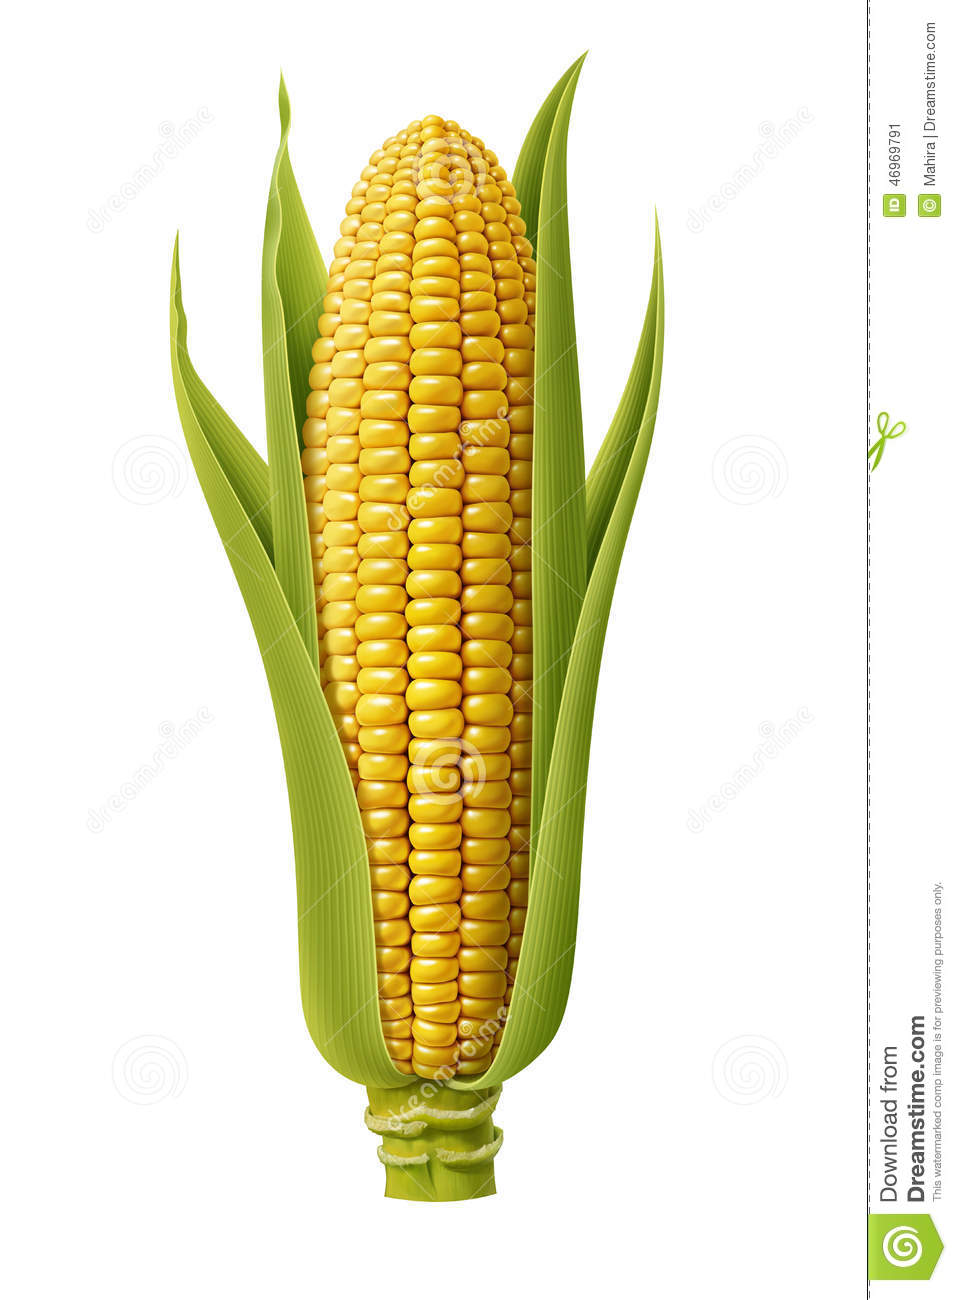 Fresh Corn Stock Illustration - Image: 46969791